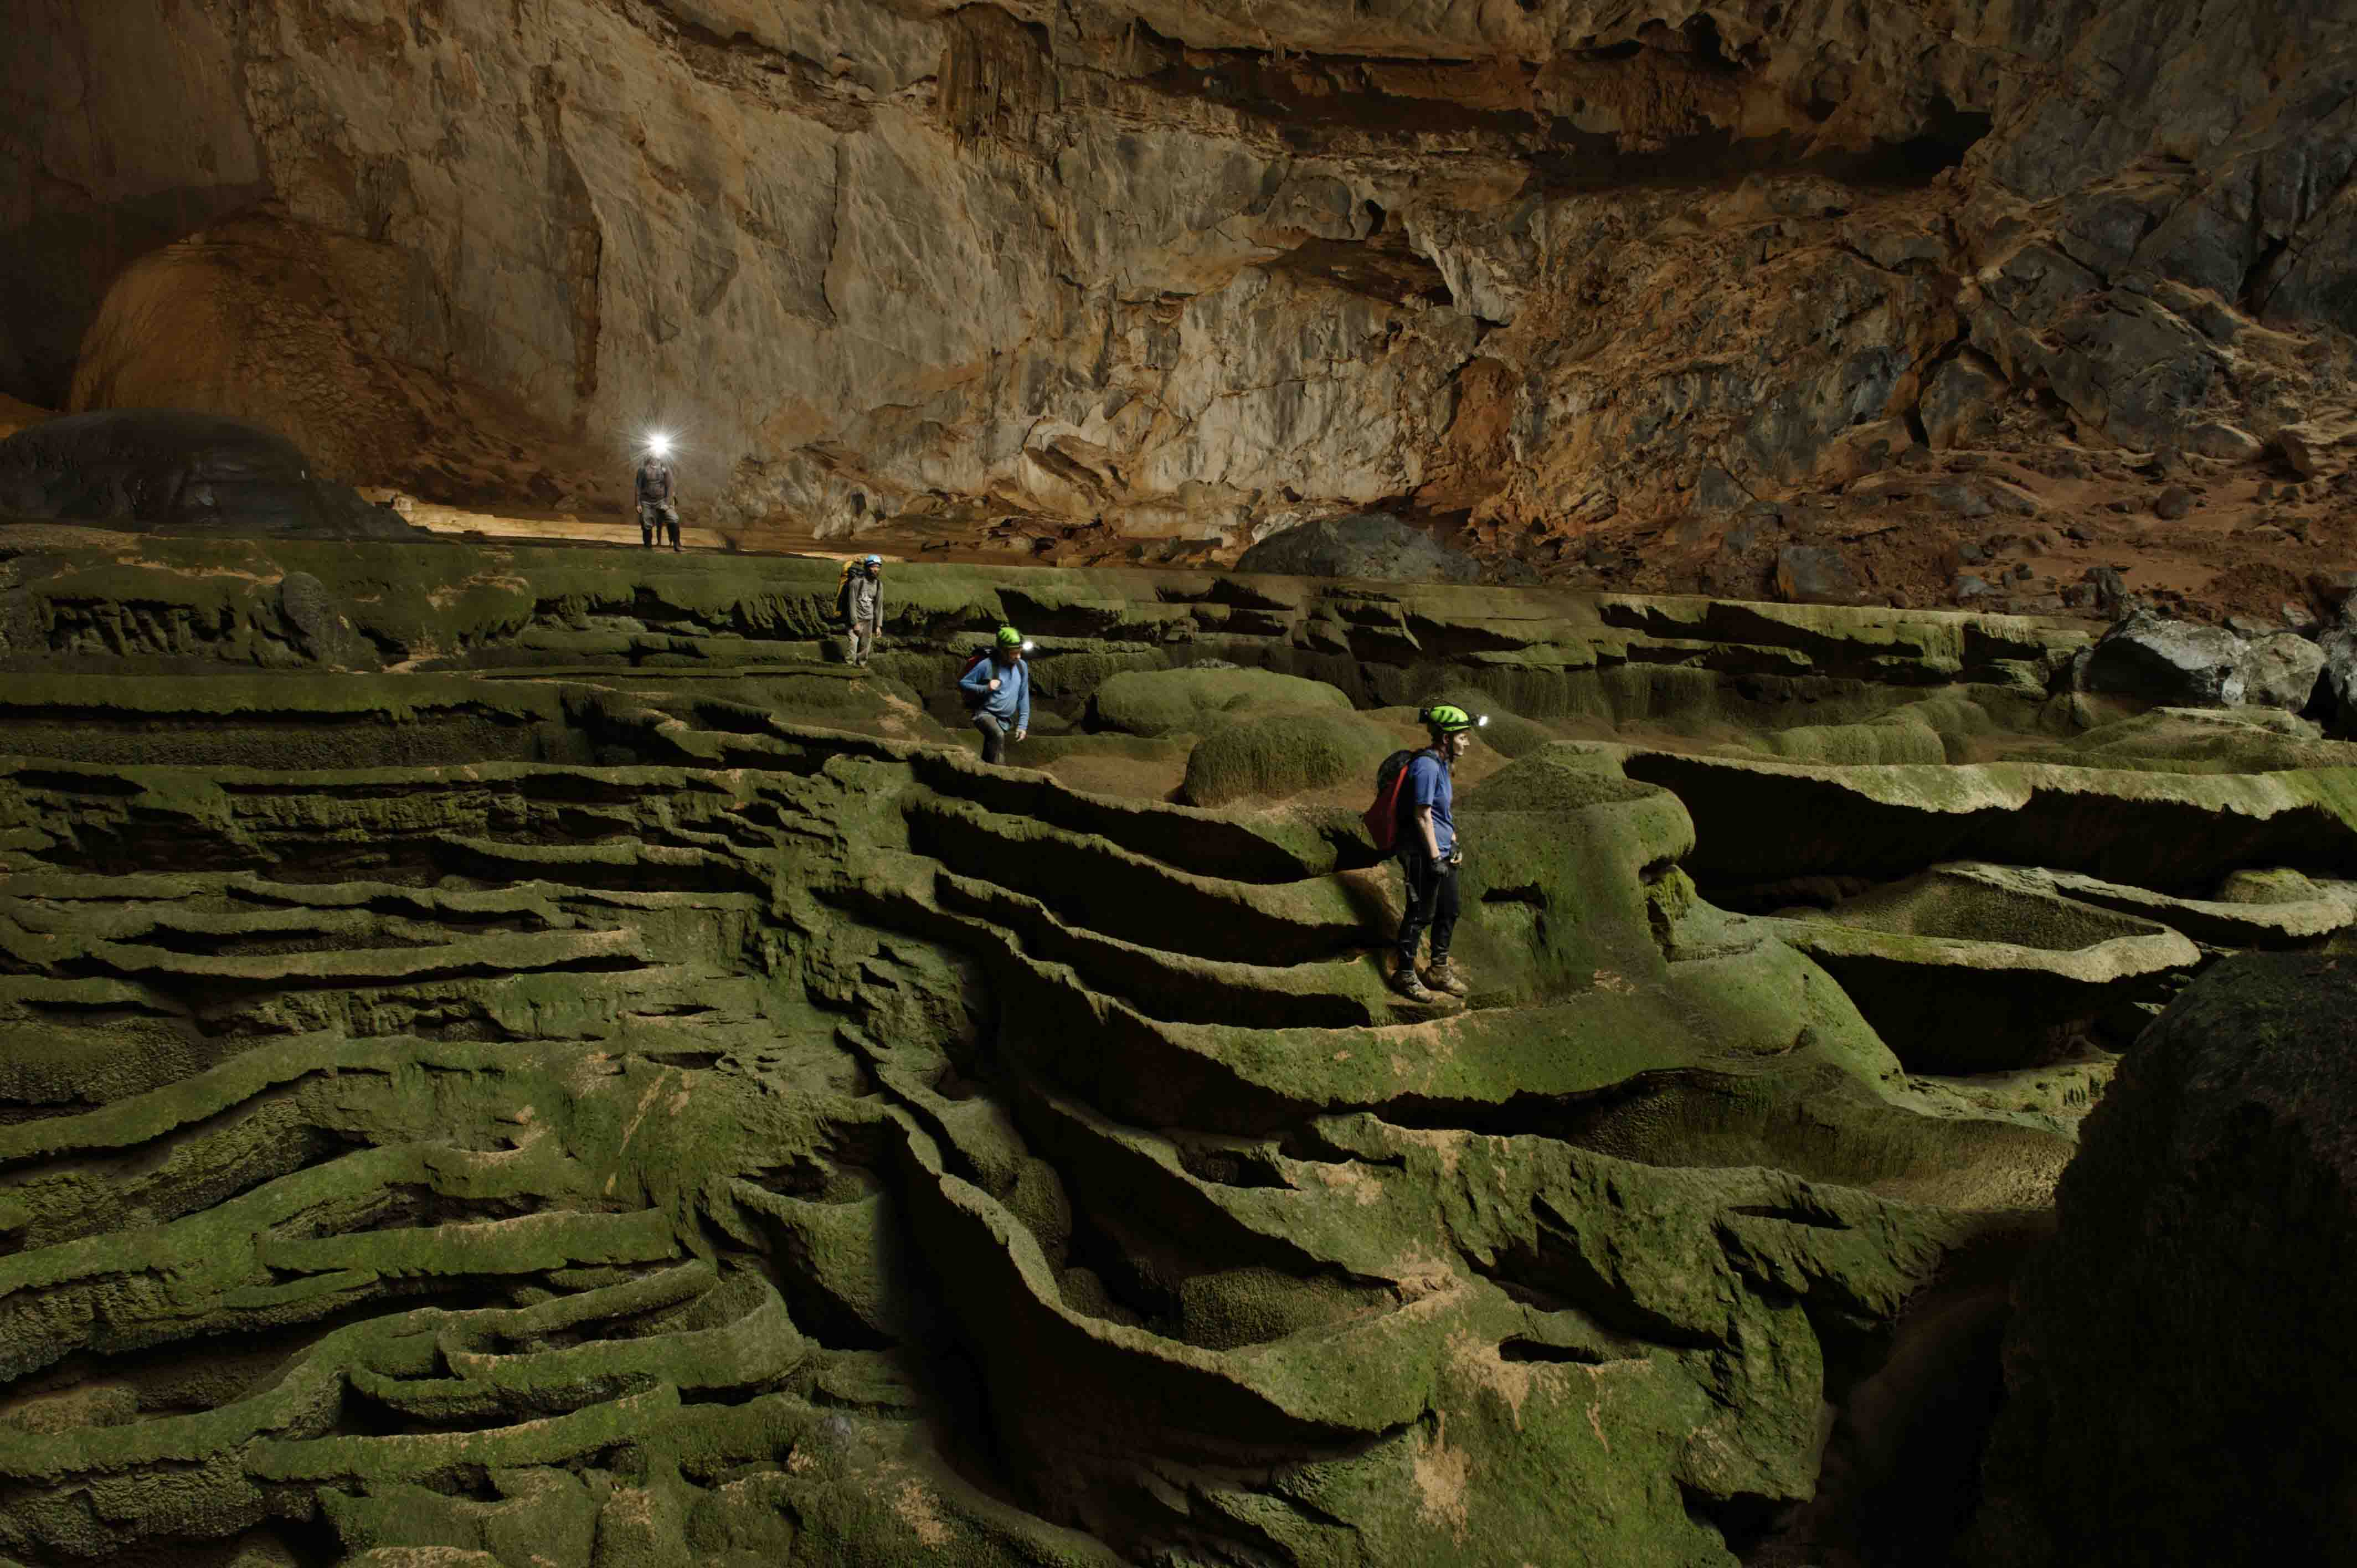 Hang Son Doong explorers navigate an algae-covered cavescape